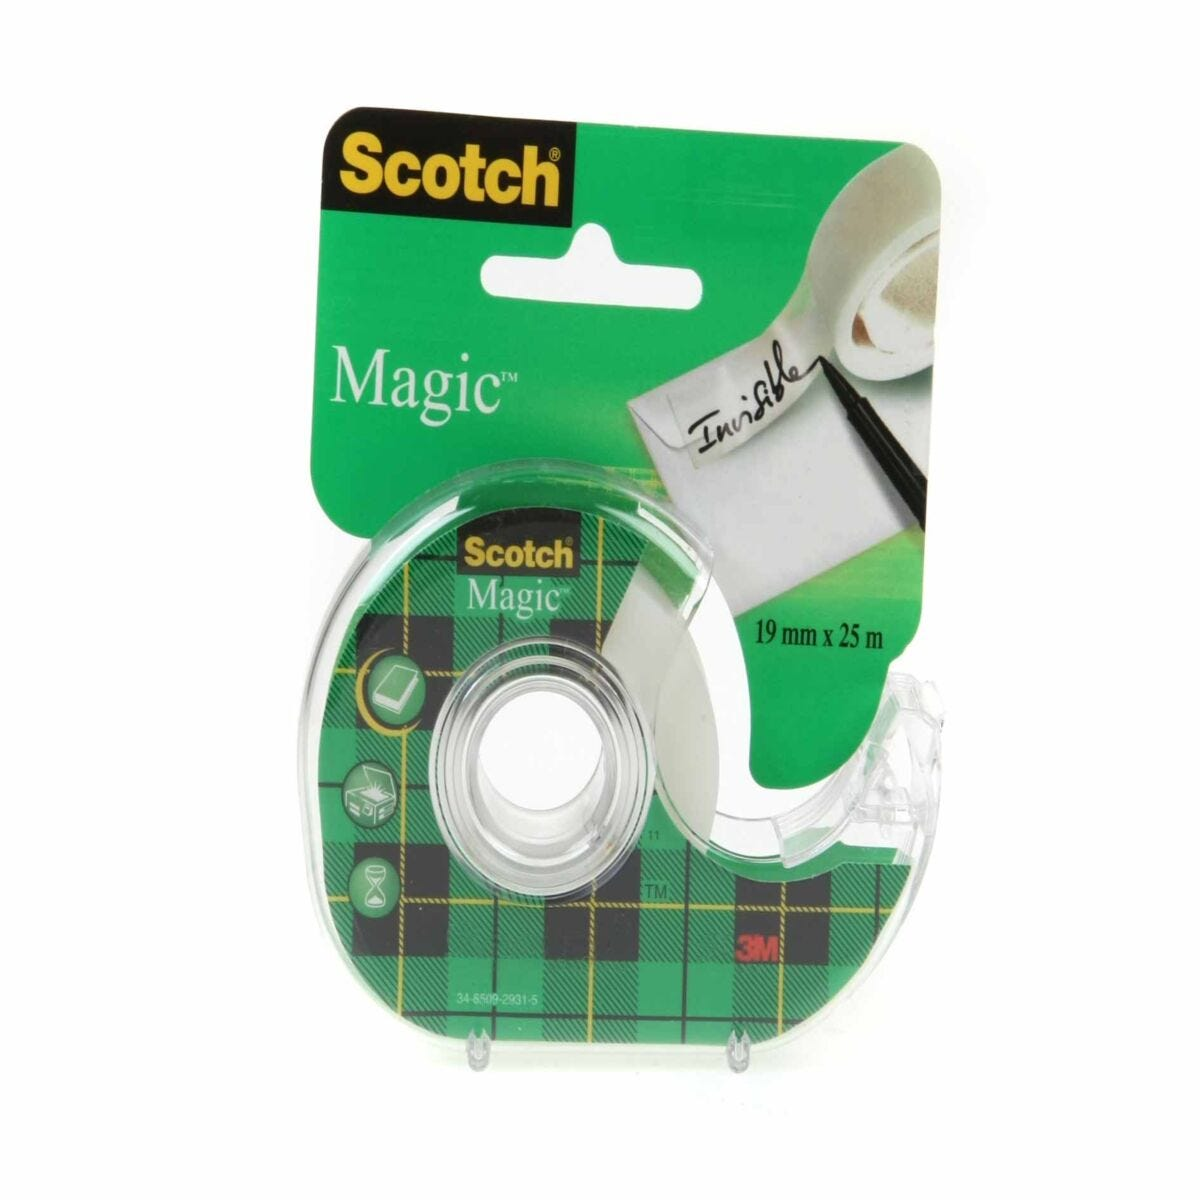 3M Scotch Magic Tape 19mm x 25m with Dispenser